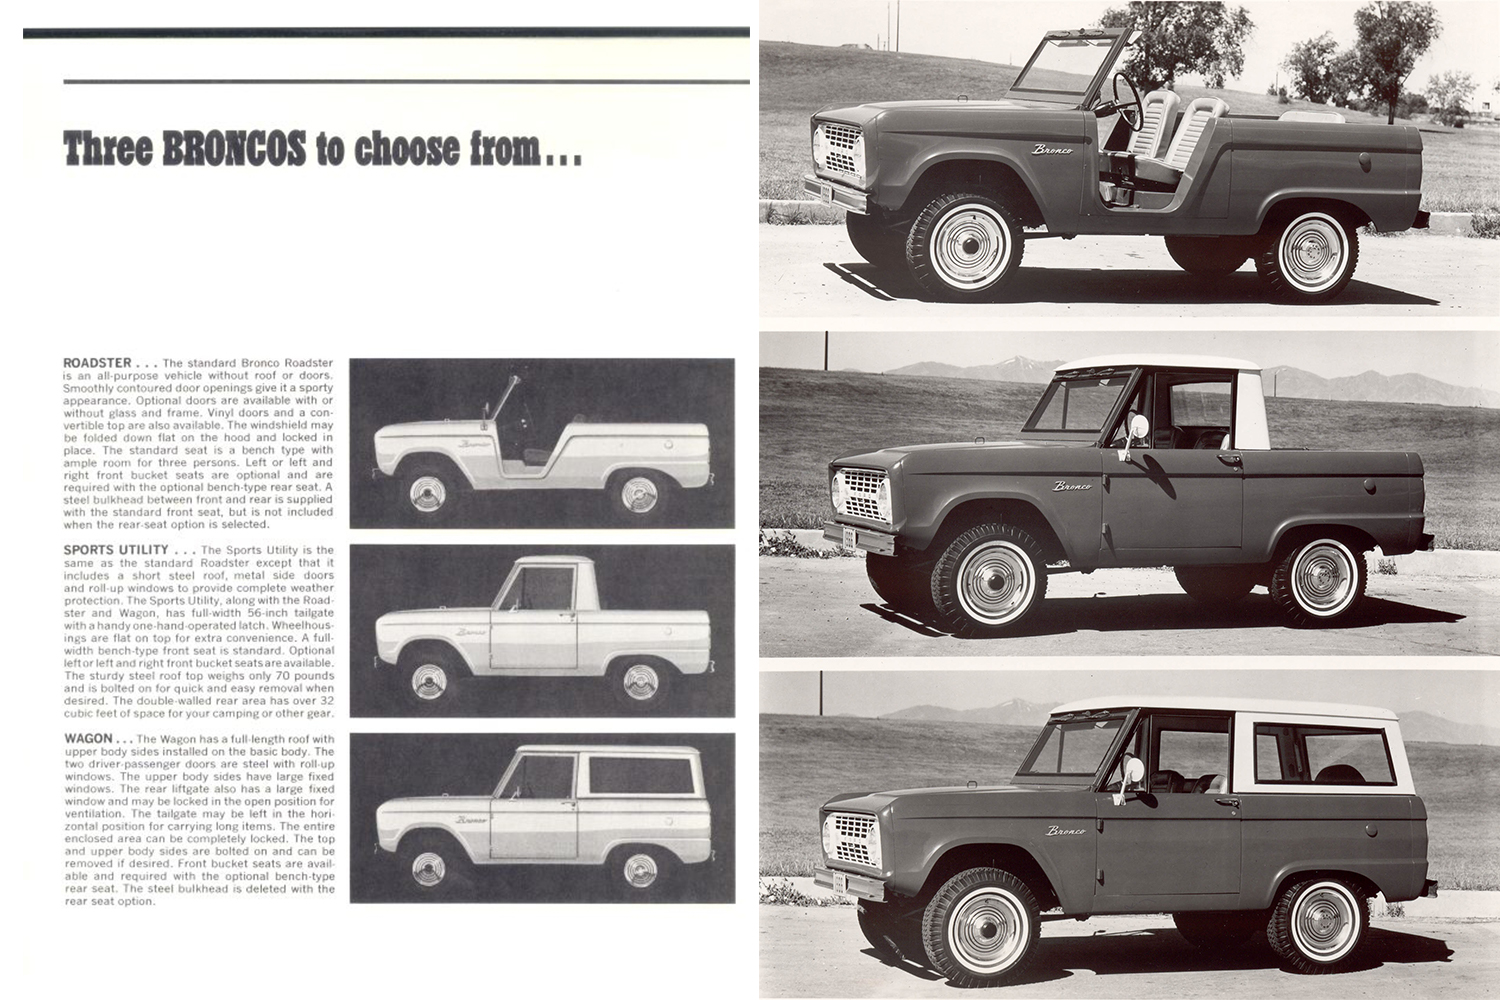 1966 first generation Ford Bronco ads and marketing materials